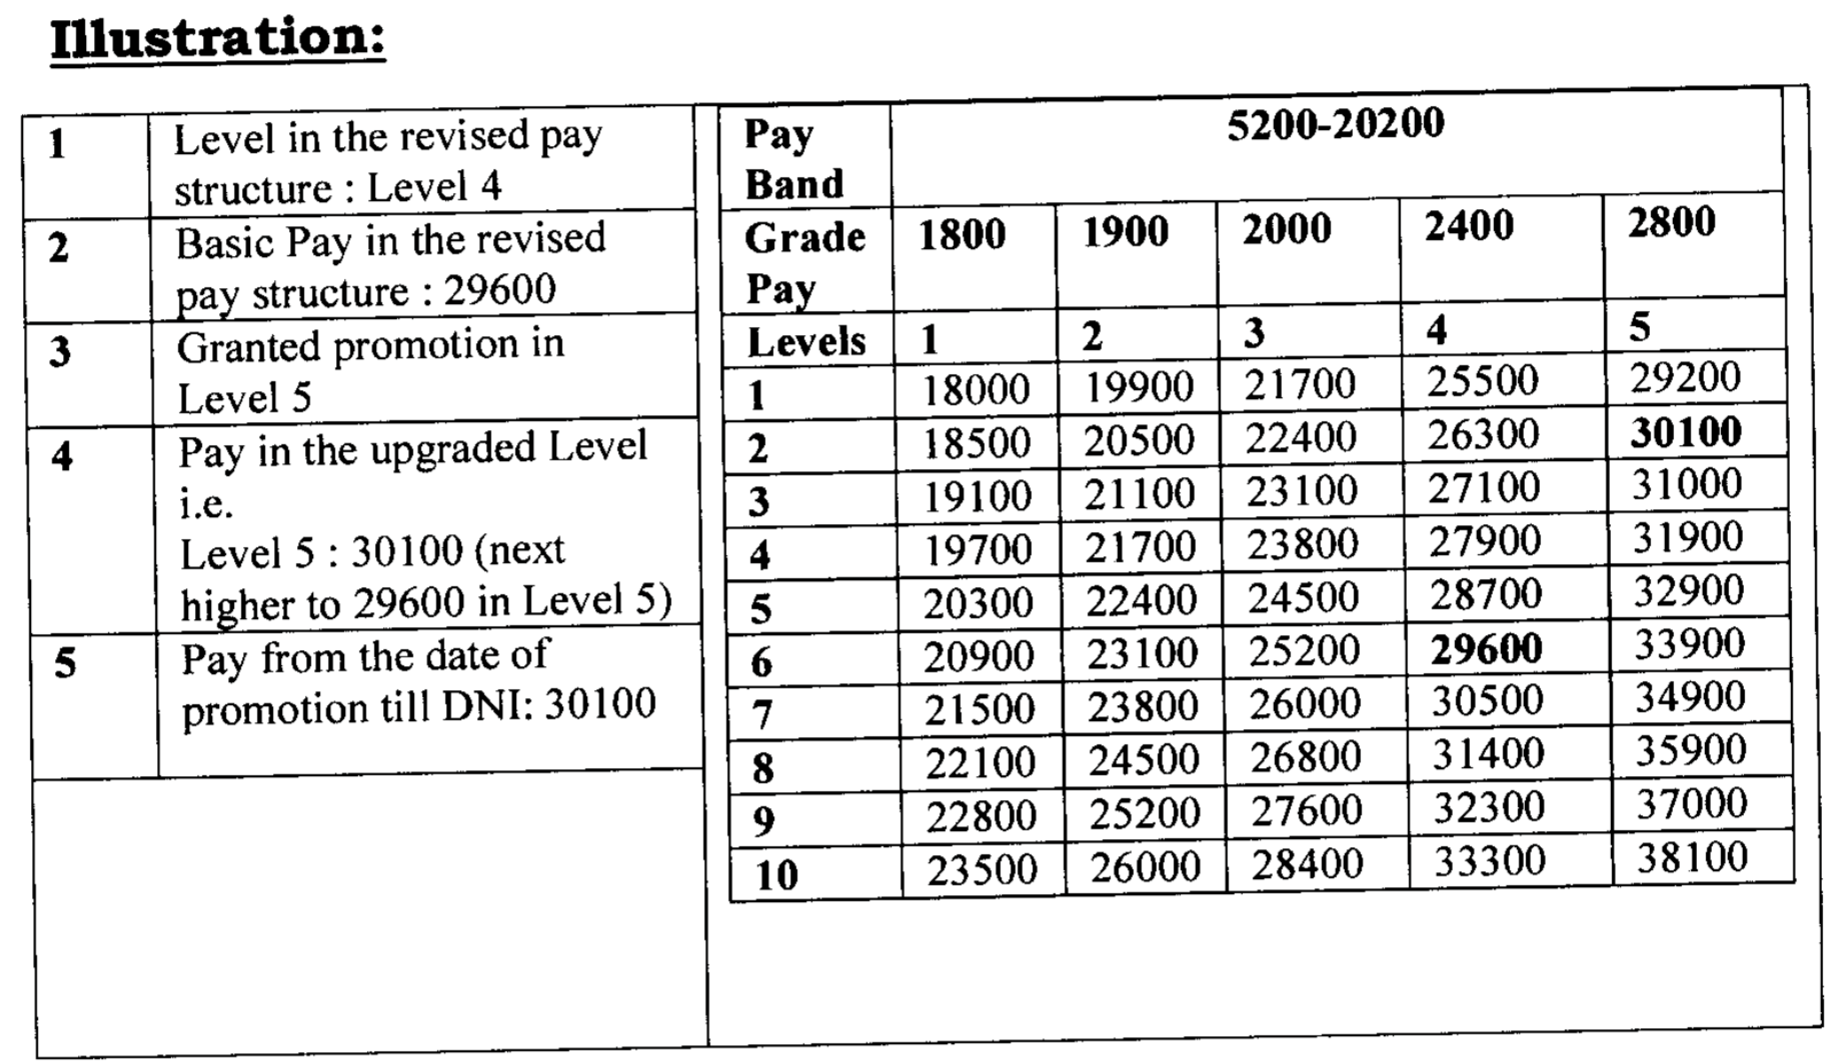 7th pay commission Railways pay fixation